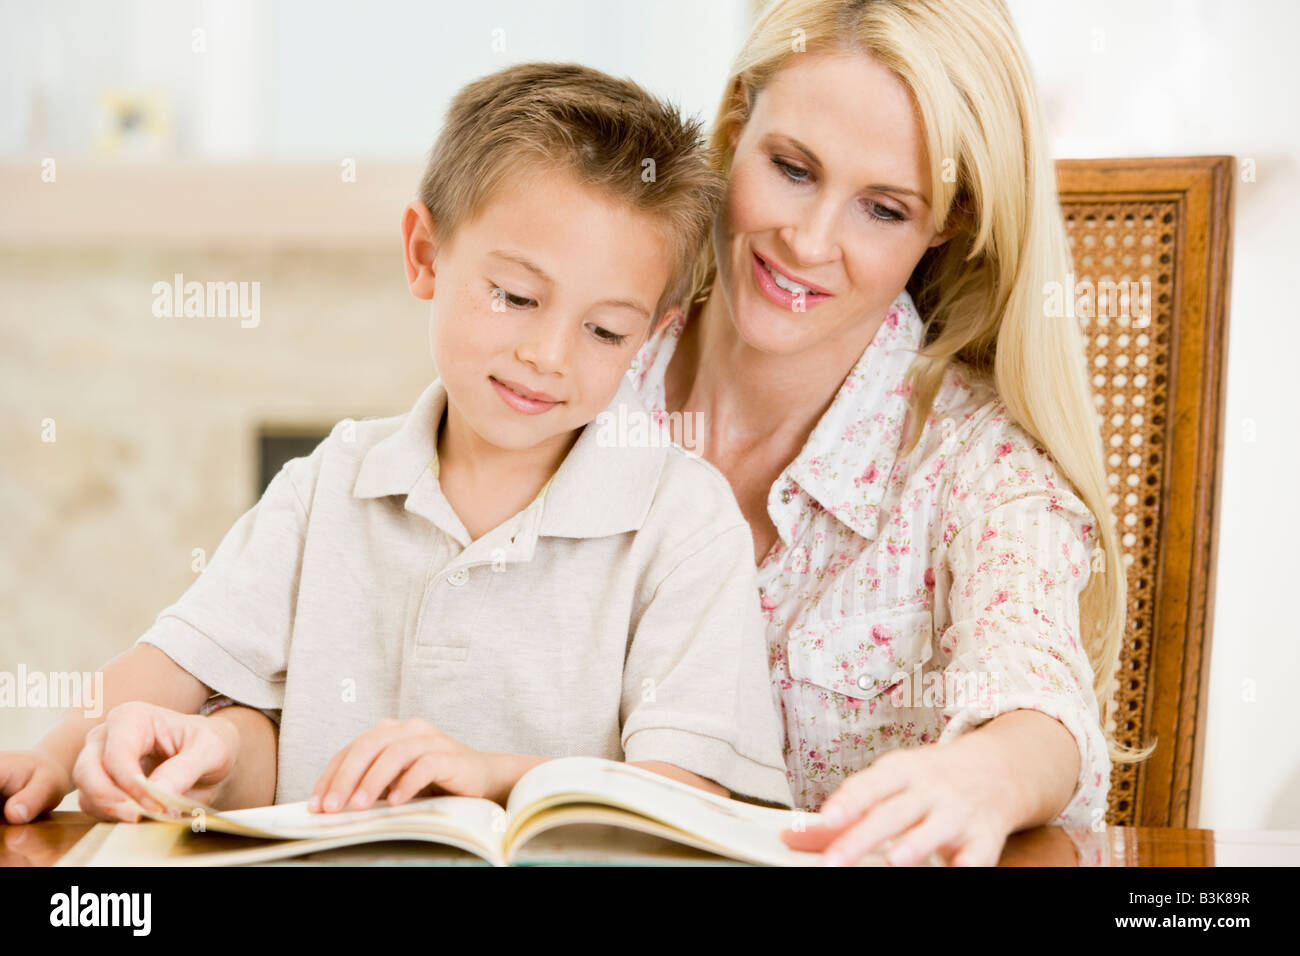 Woman and young boy reading book in dining room smiling - Stock Image